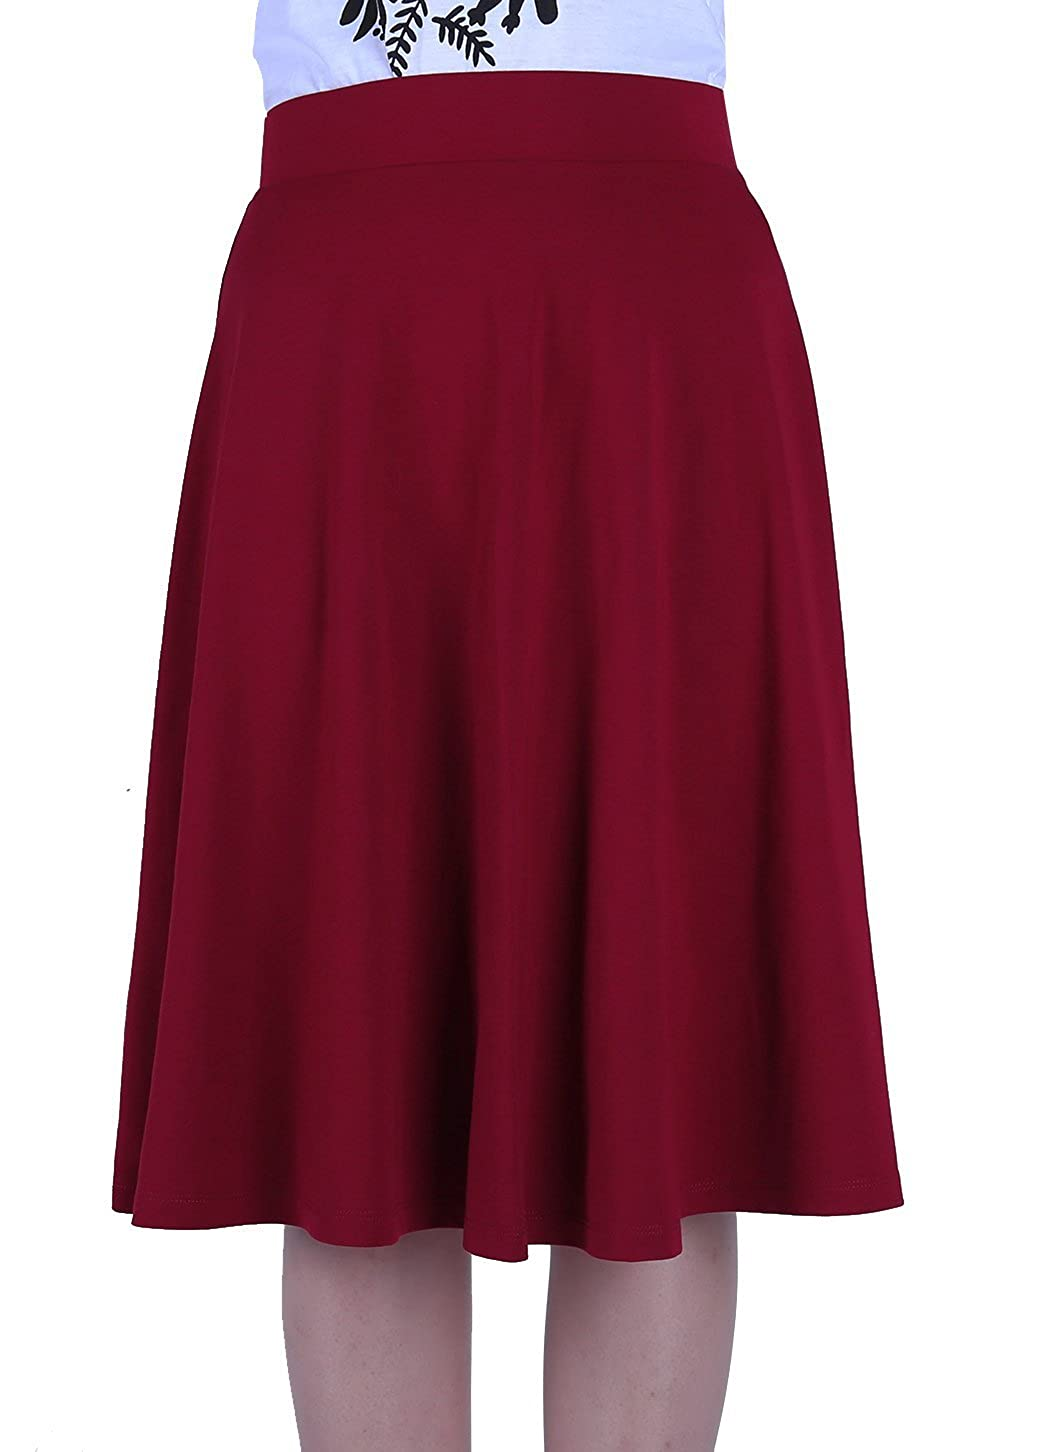 877a381df0b Fabric a little thick Waist Type High Waist With Elastic Waistband  Silhouette Skater Skirt Length Knee Length It is so incredibly comfortable  ...